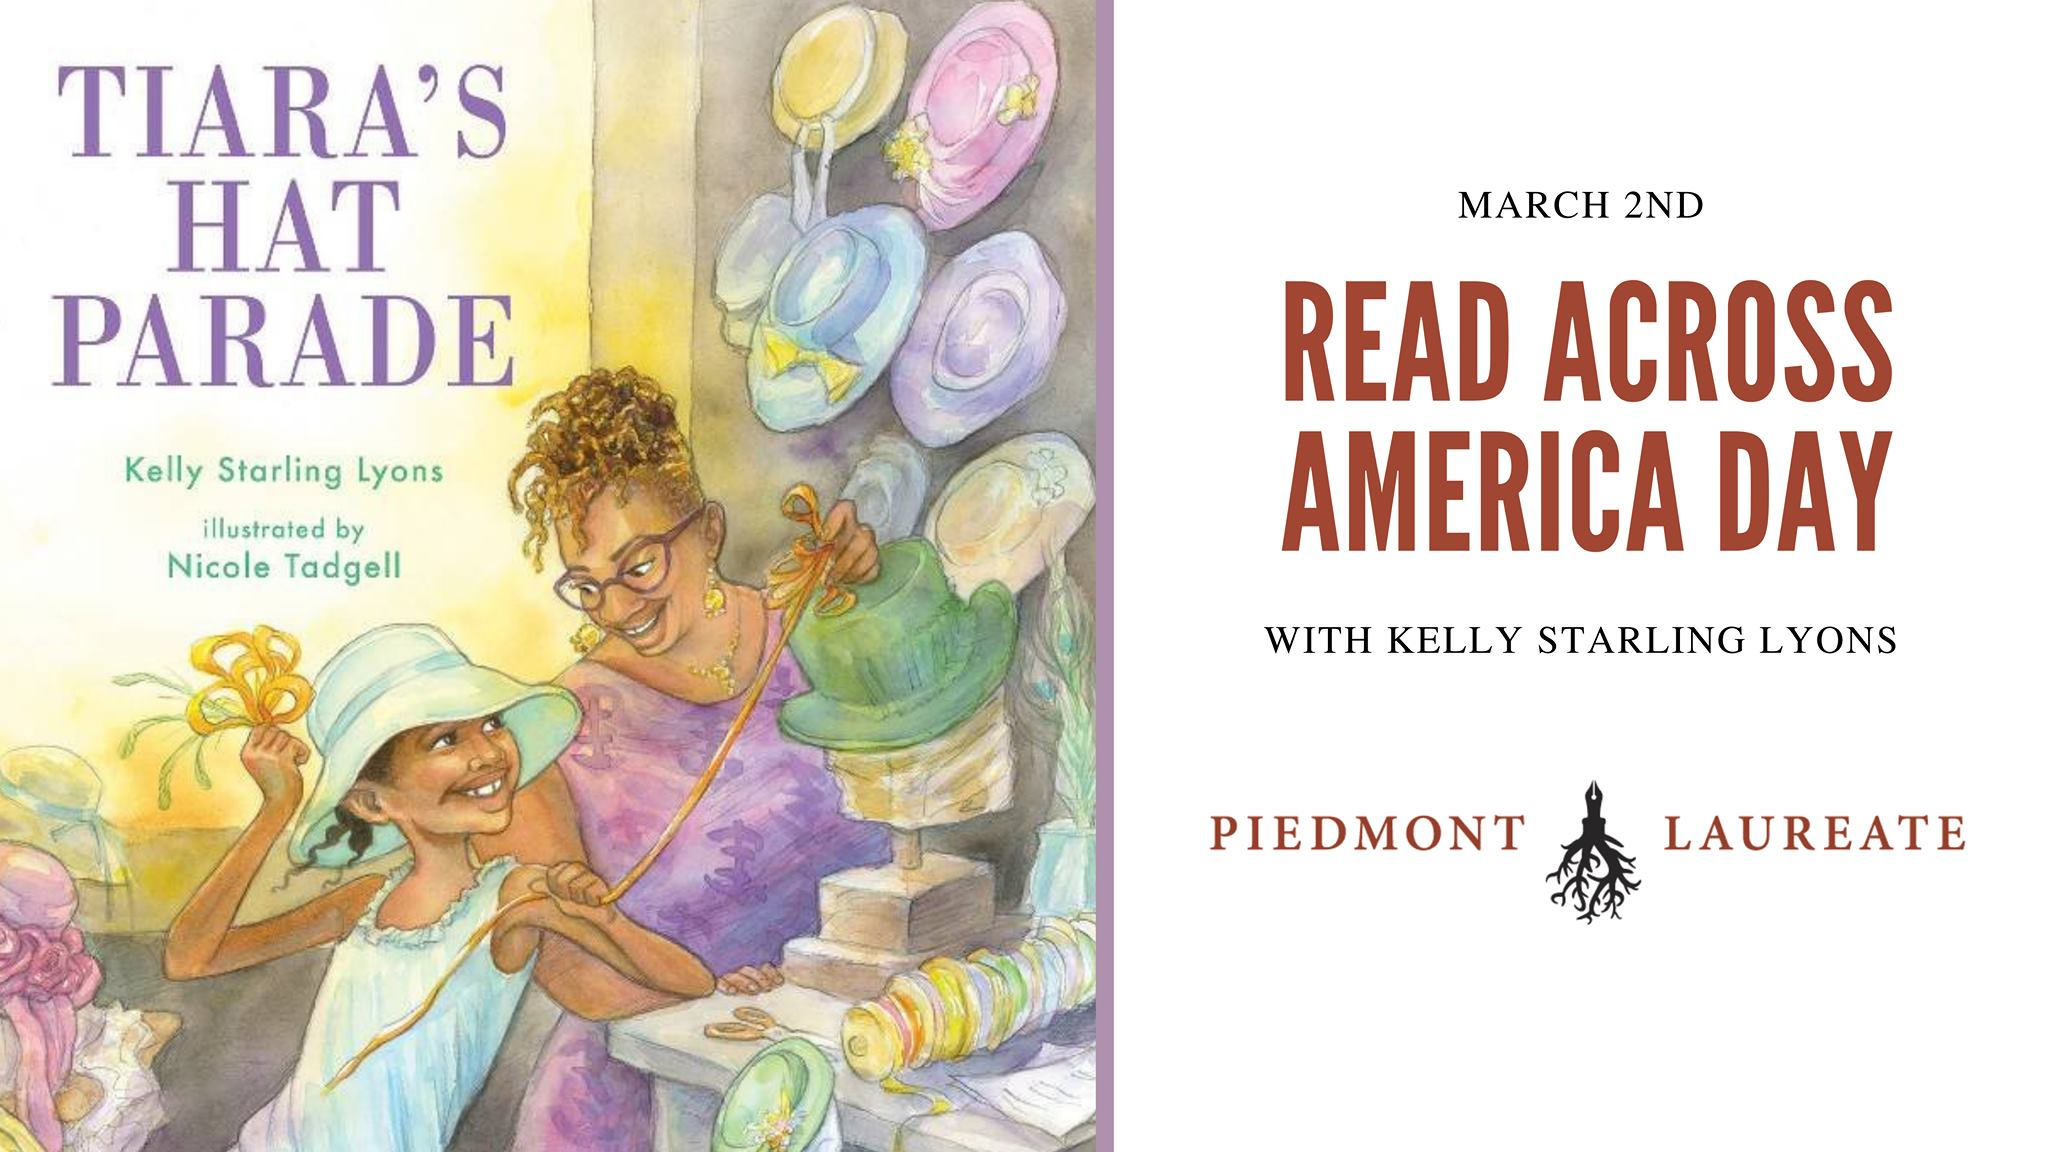 March 2nd, Read Across America Day with Kelly Starling Lyons, Piedmont Laureate. Featuring a reading of Tiara's Hate Parade